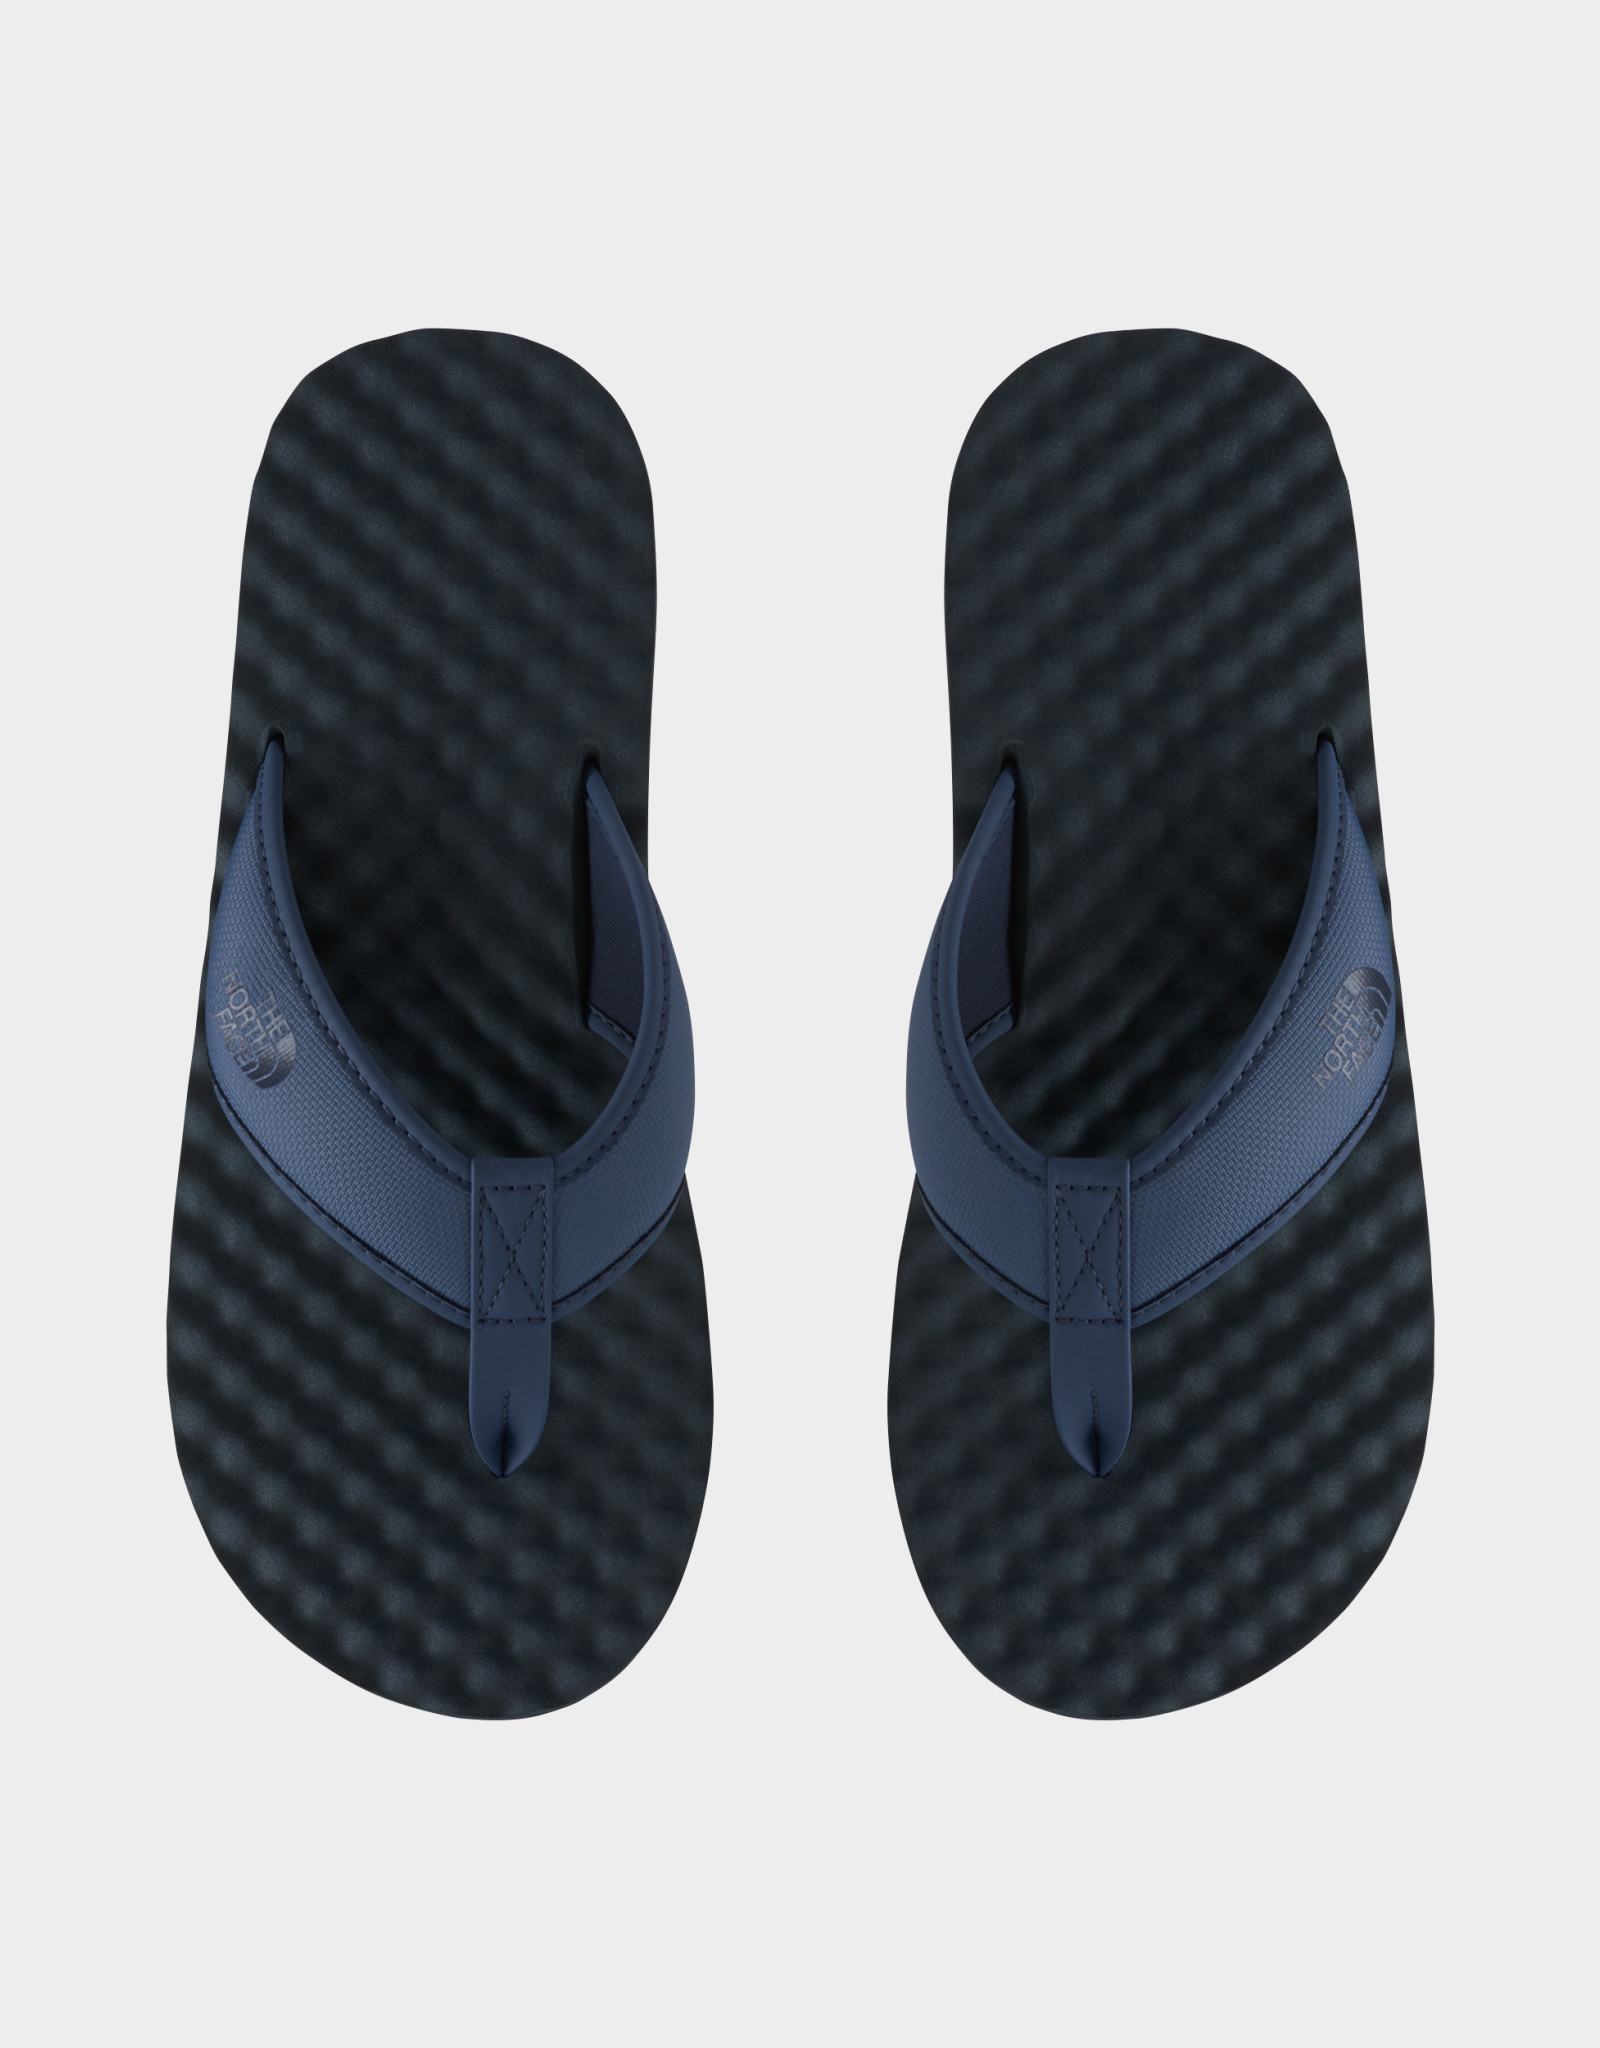 The North Face The North Face Men's Base Camp Flip-Flop II -S2021